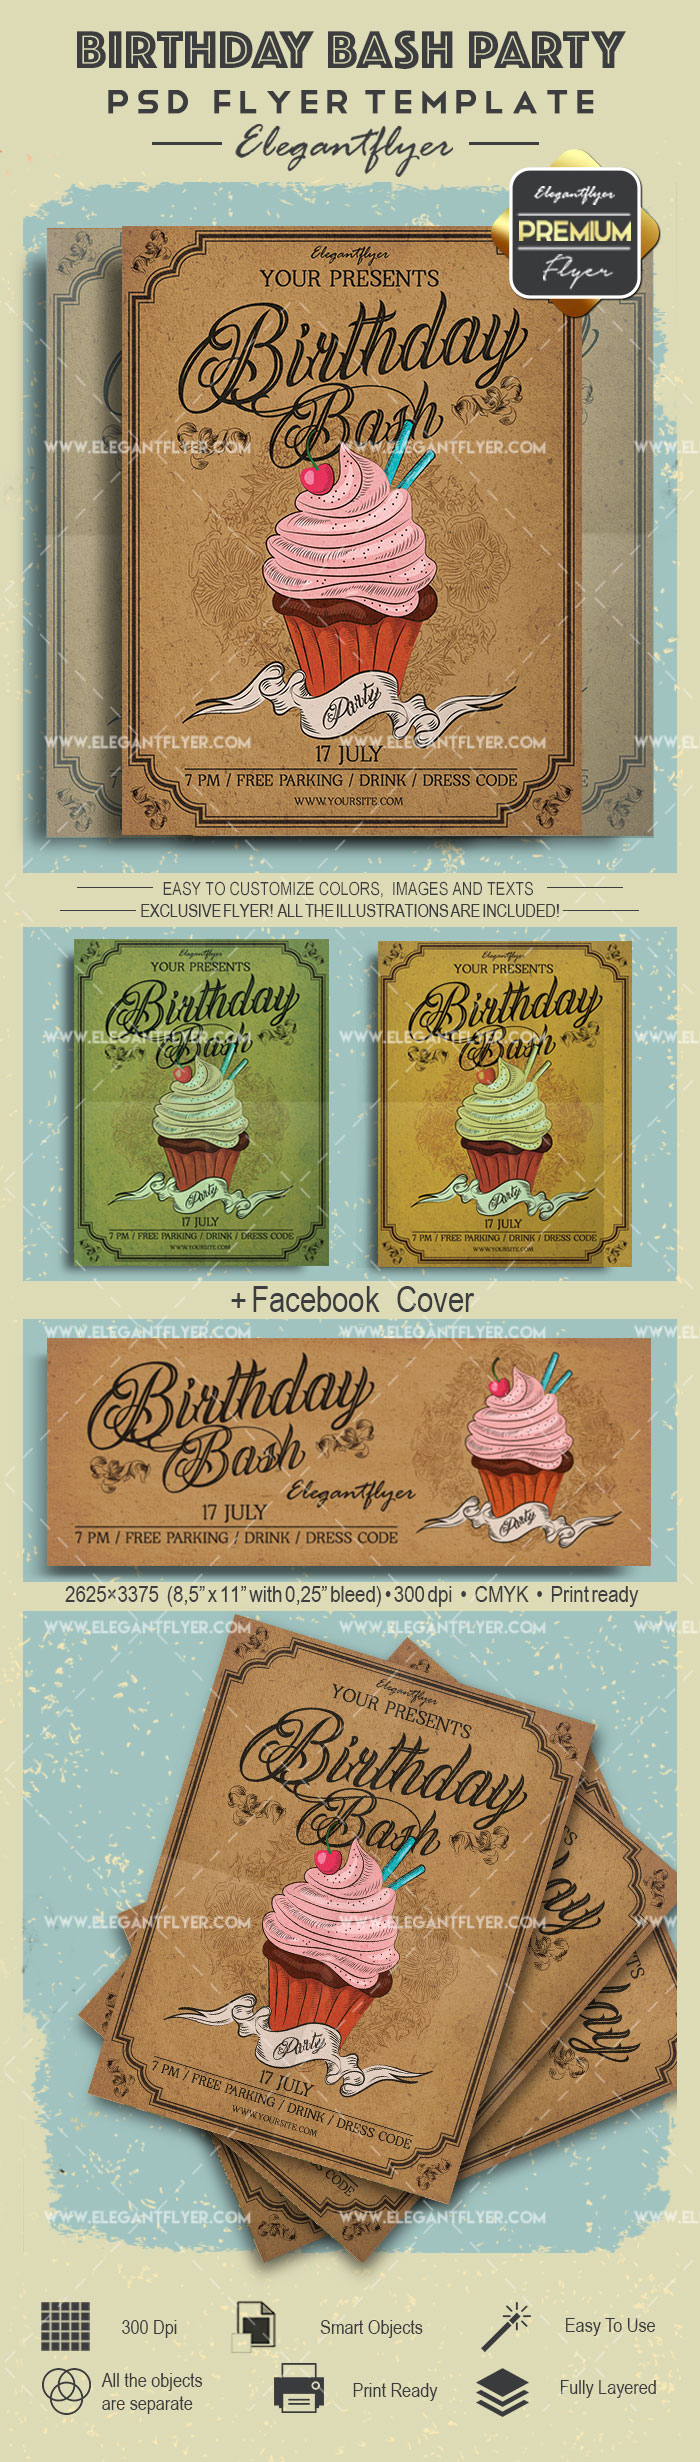 Birthday Bash Party- Flyer PSD Template